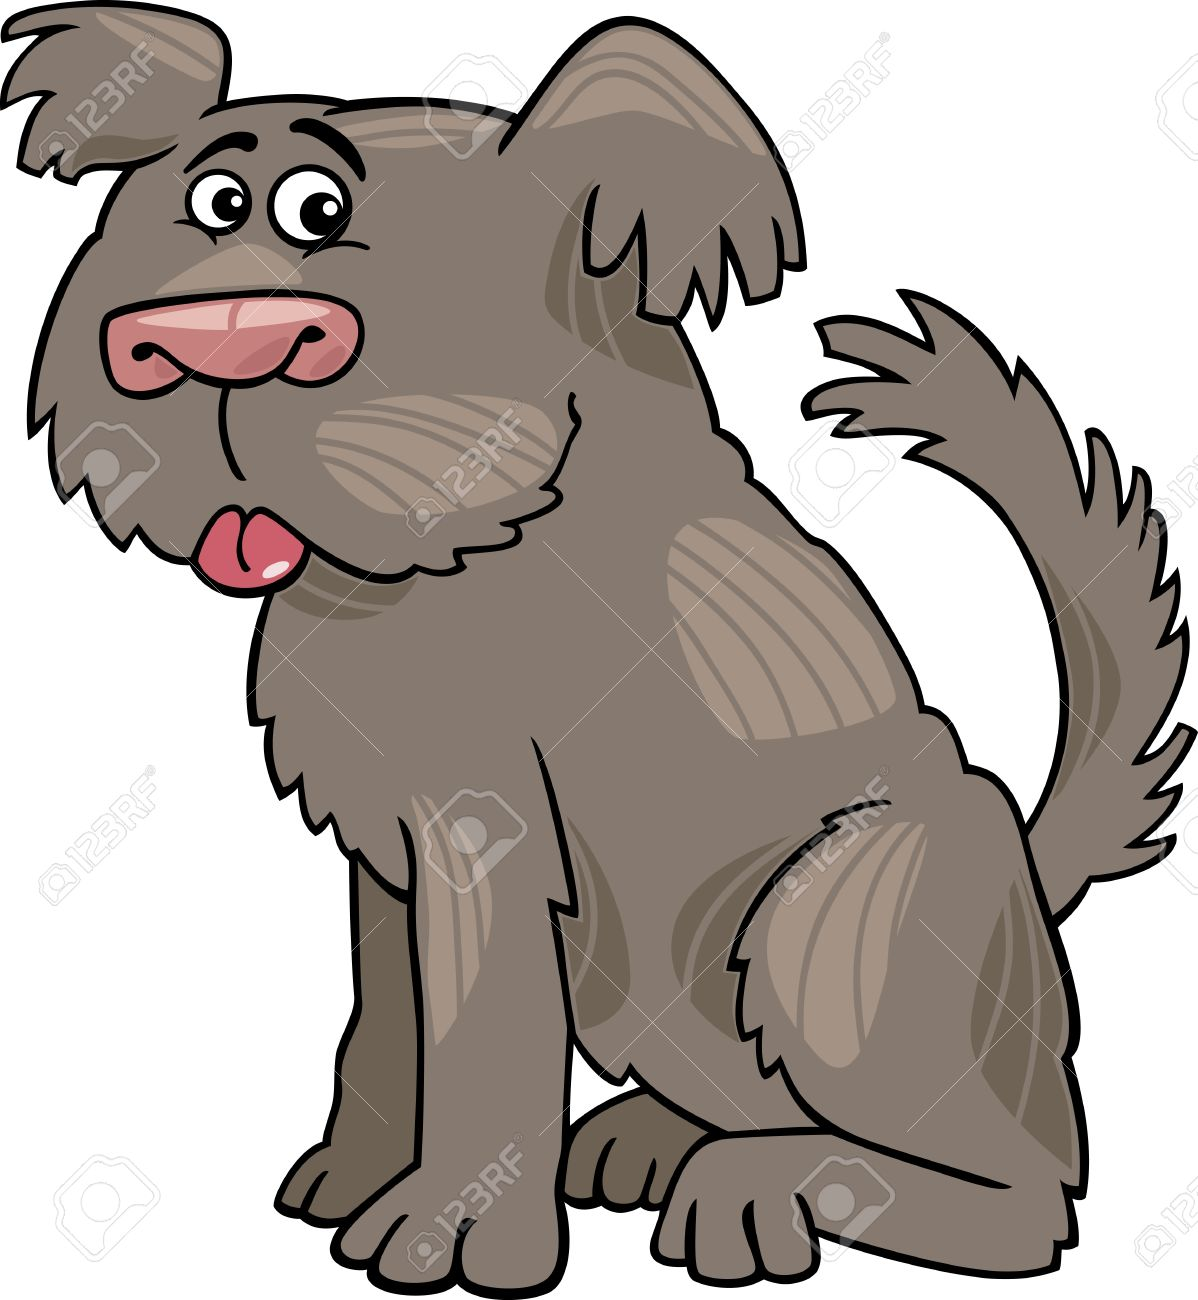 Cartoon Illustration Of Funny Shaggy Sheepdog Or Bobtail Dog.